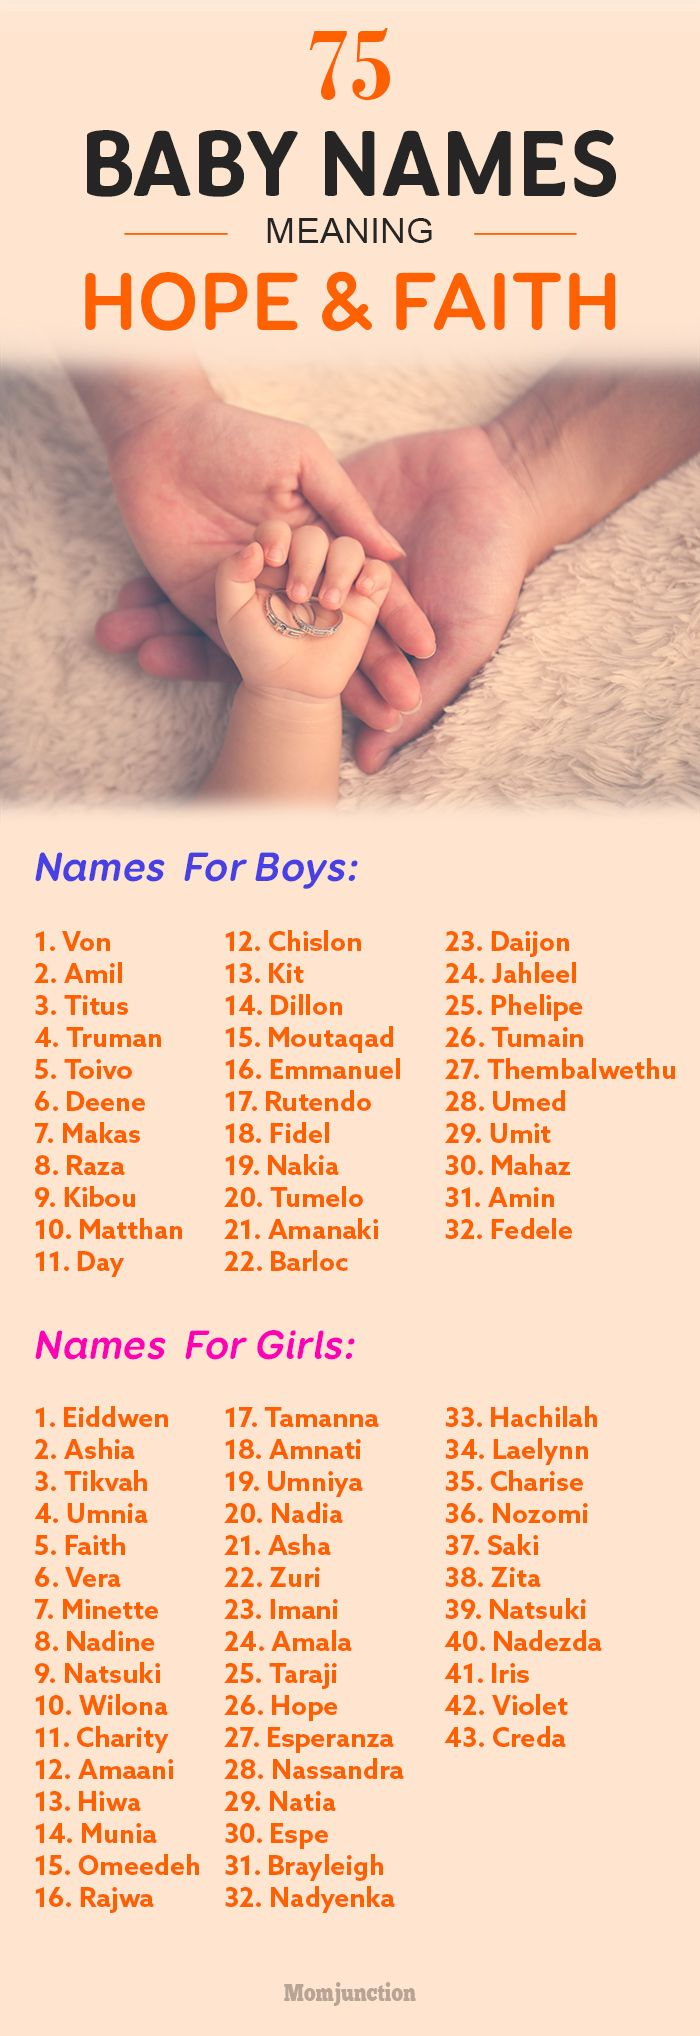 Searching for a unique baby name? MomJunction has compiled a list of 75 baby names that mean hope and faith from various cultures. Just keep reading!